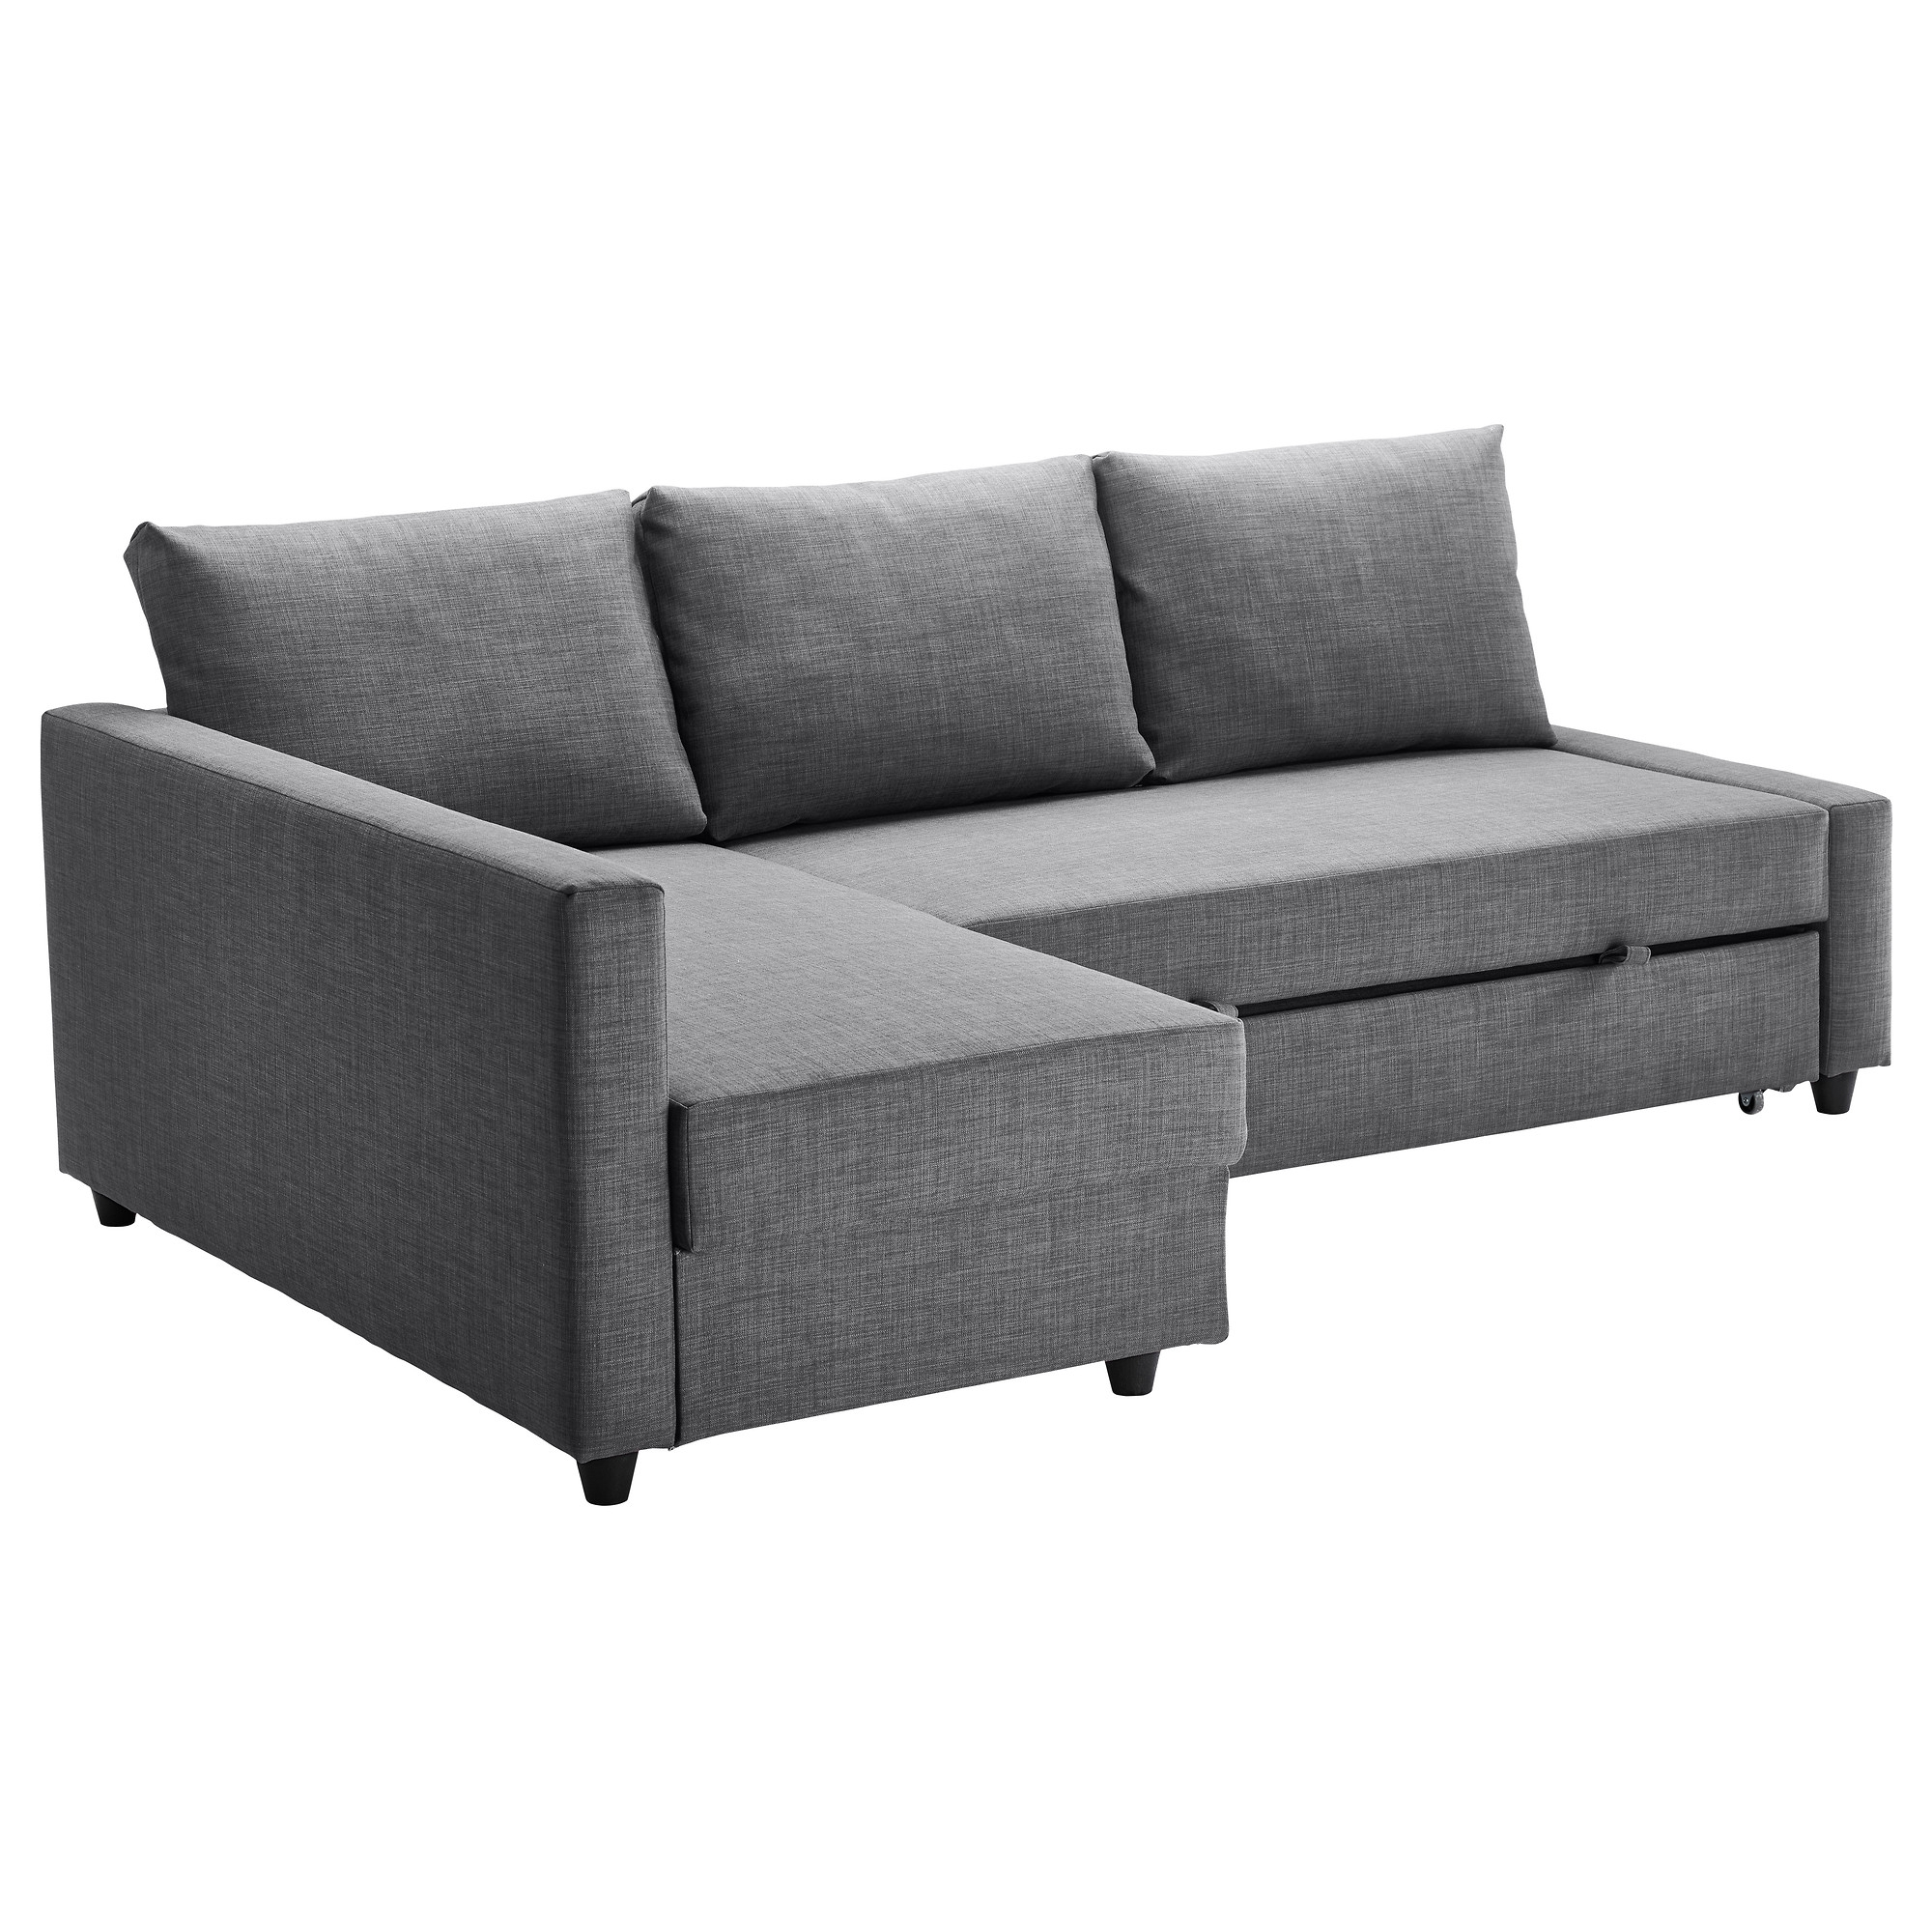 Fashionable Friheten Corner Sofa Bed With Storage – Skiftebo Dark Gray – Ikea With Regard To Ikea Corner Sofas With Storage (View 7 of 15)